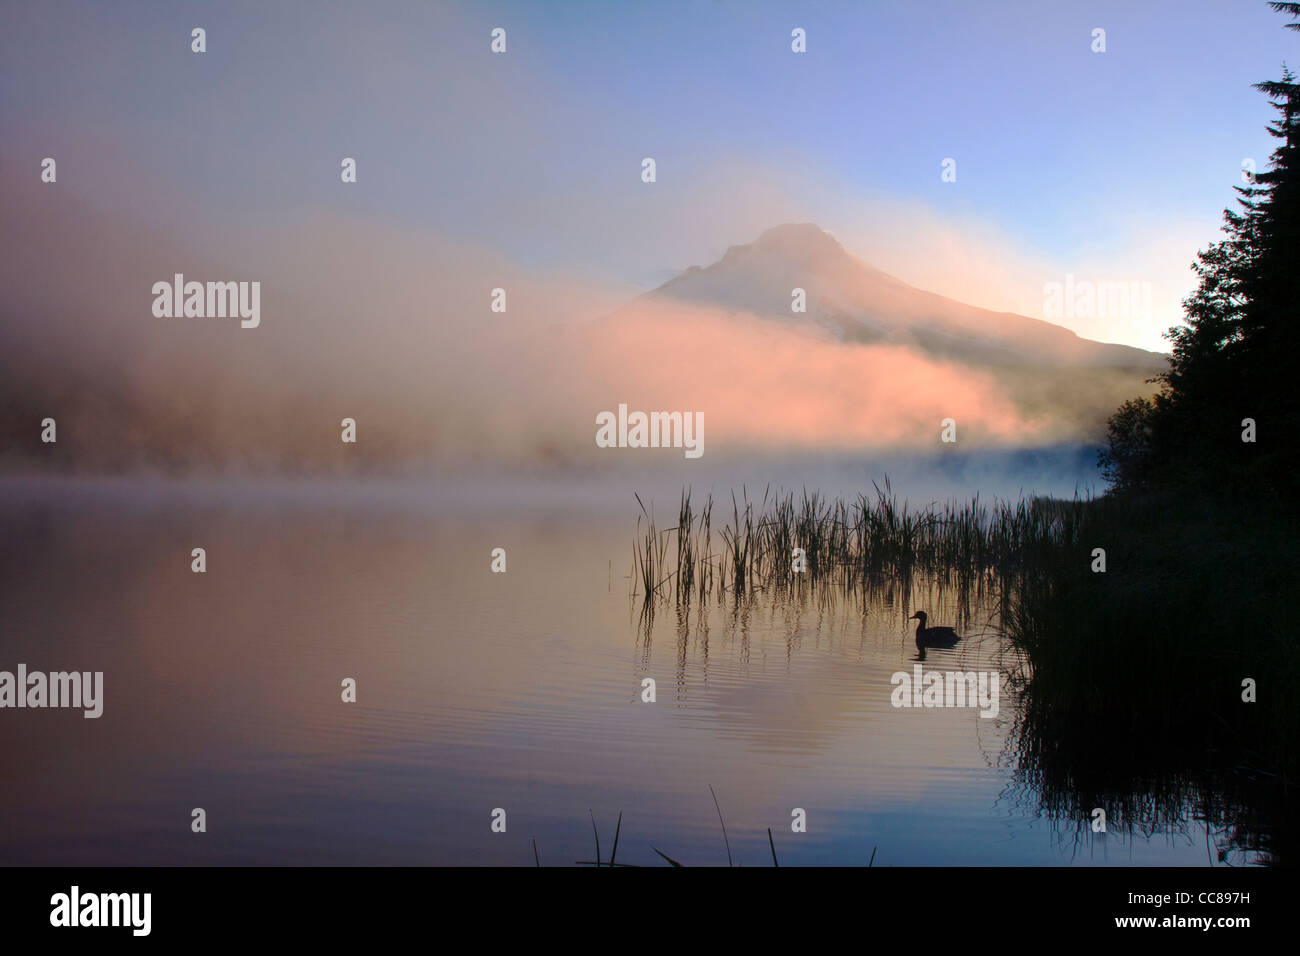 Foggy Sunrise over Trillium Lake with a duck floating in foreground & Mt Hood behind - Stock Image